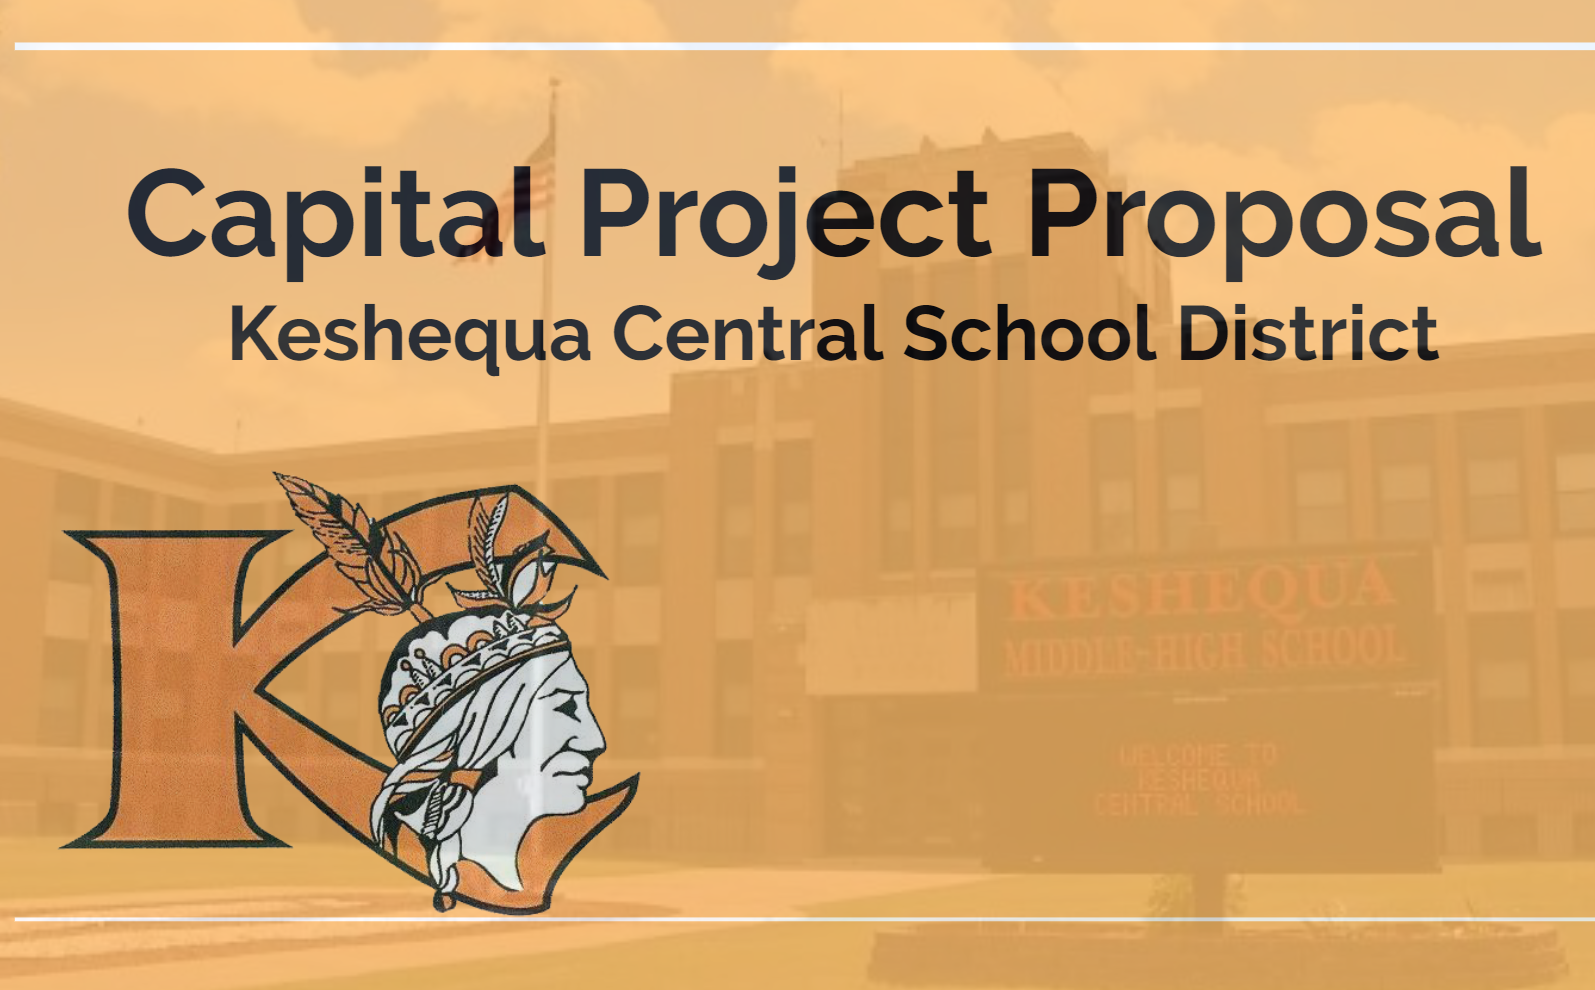 Capital Project Proposal Image